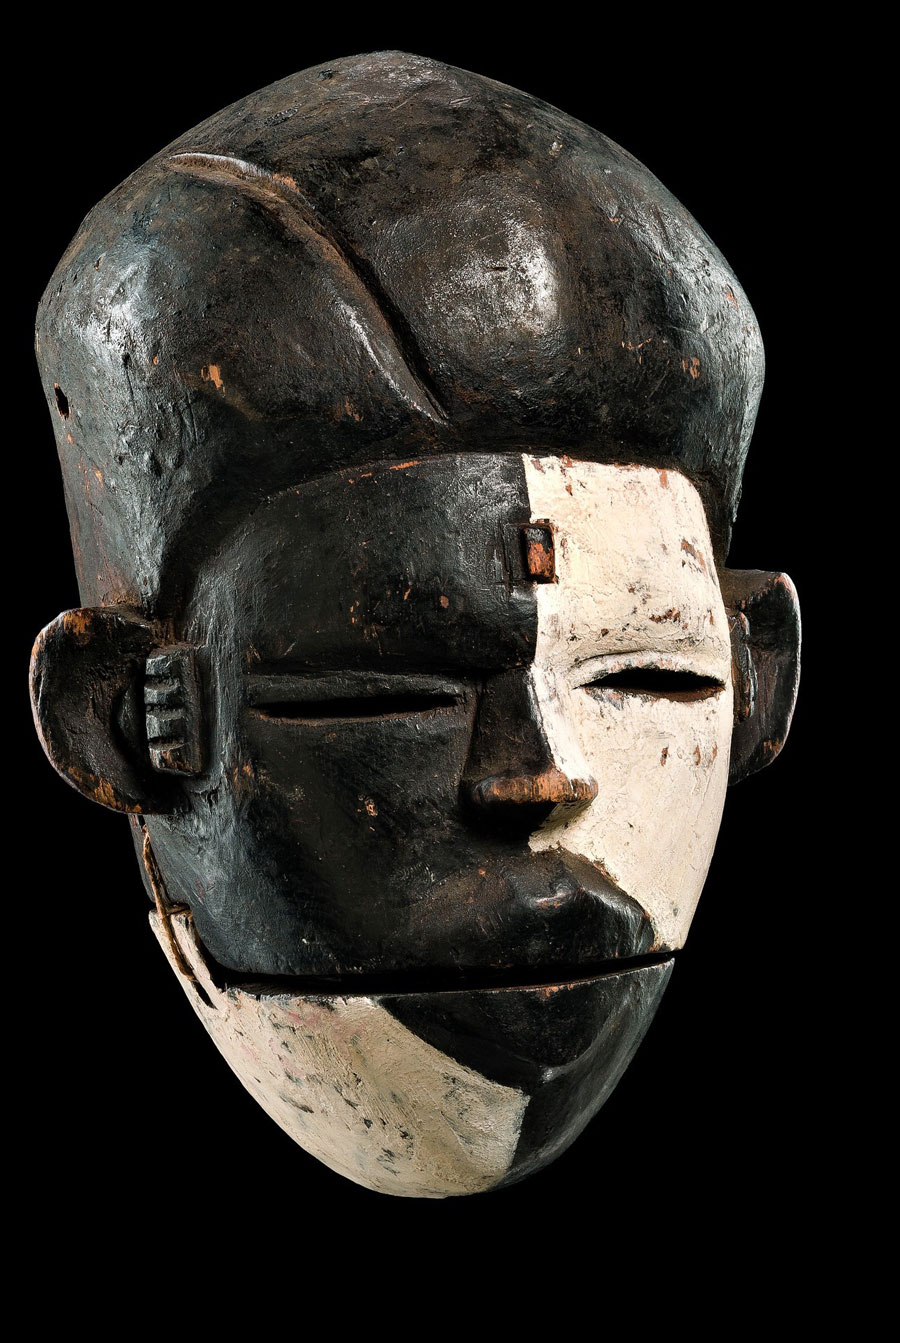 Ogoni masks from Nigeria